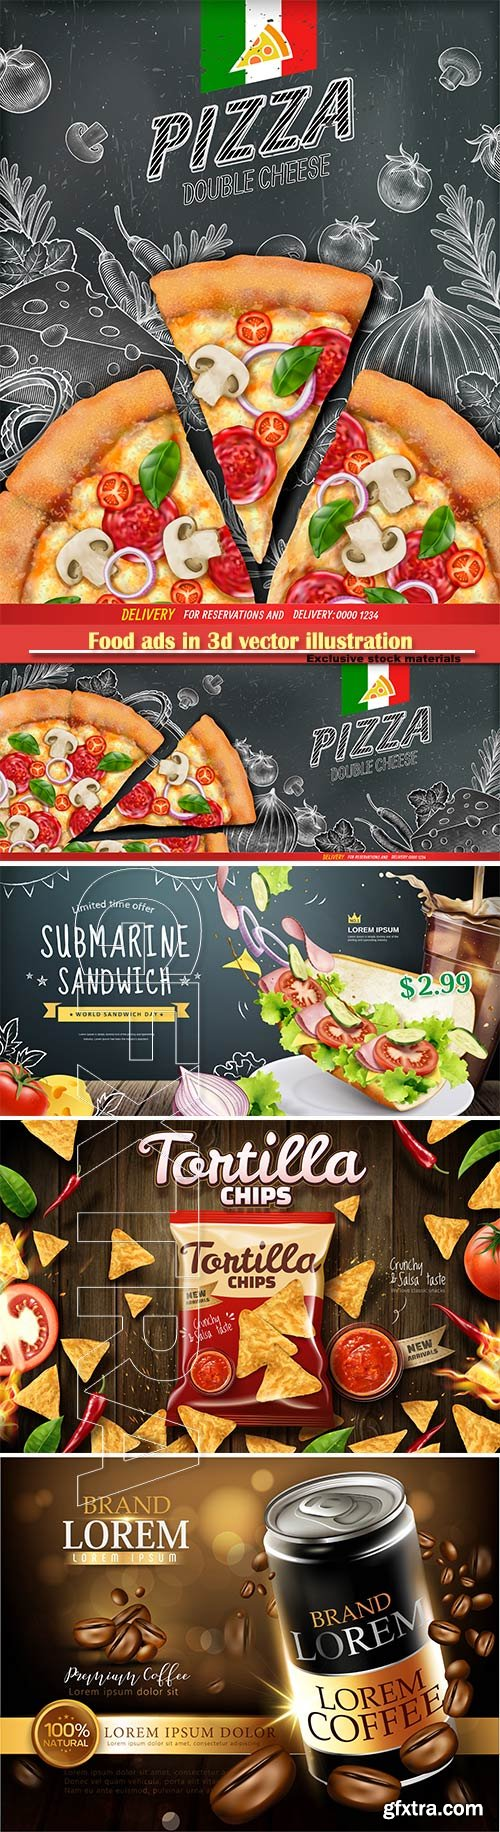 Food ads in 3d vector illustration